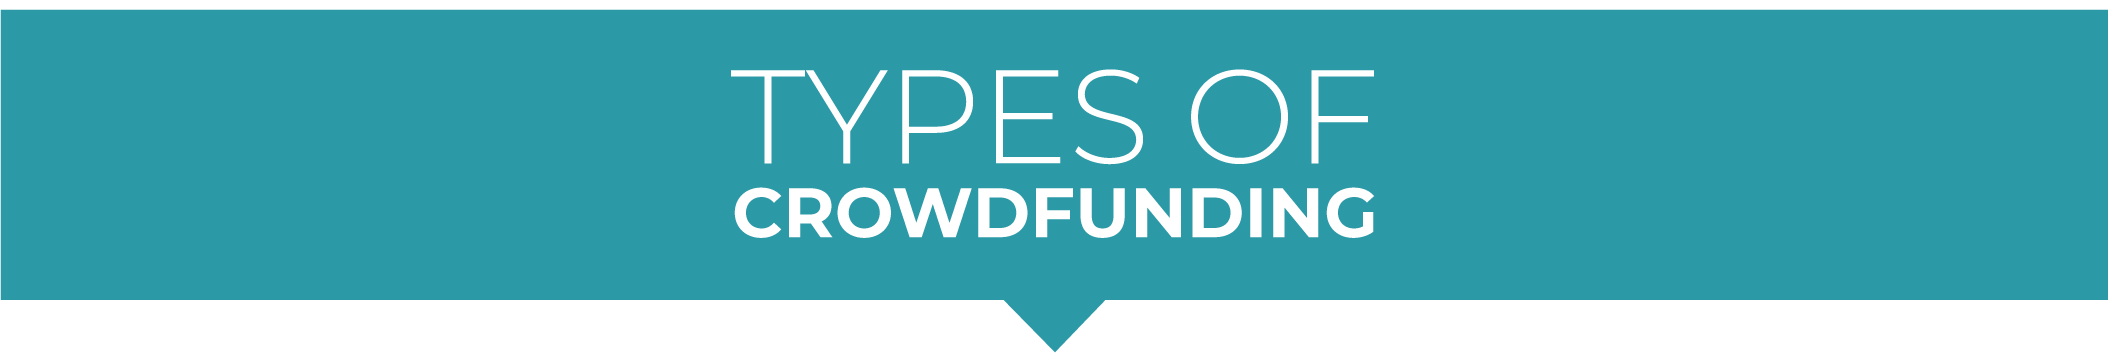 types-of-crowdfunding